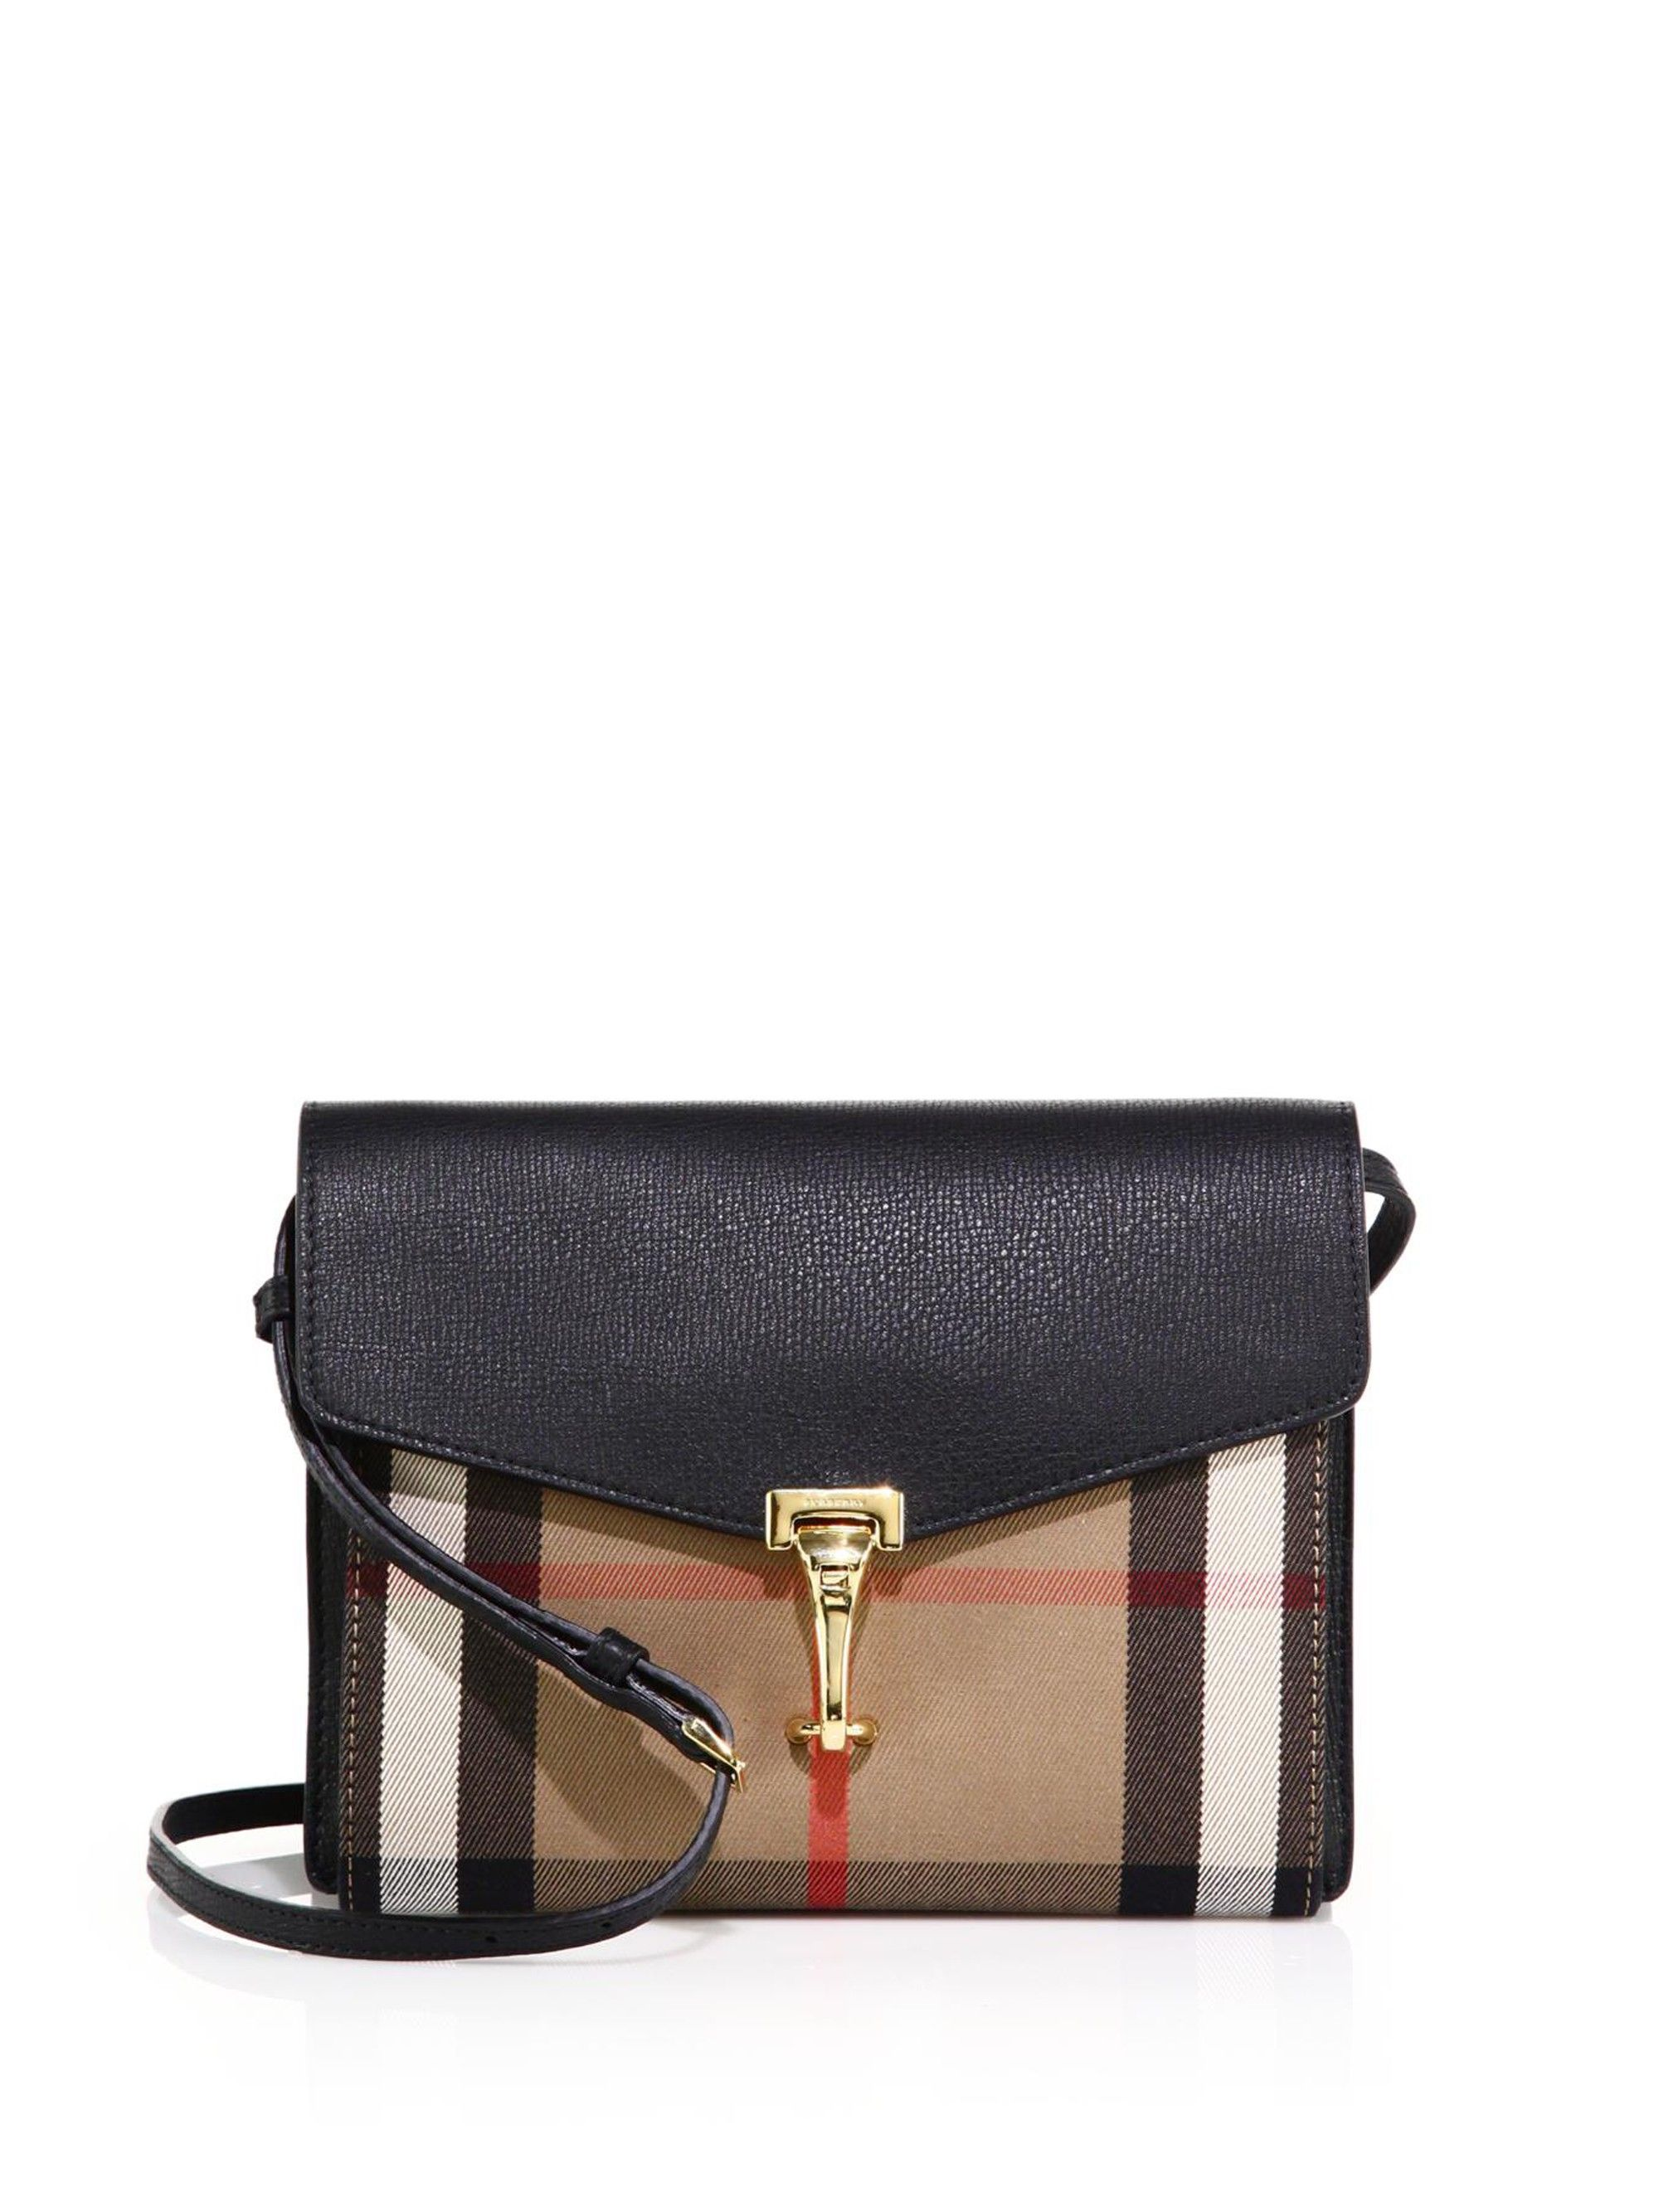 dd2339c23dc6 BURBERRY Macken Small House Check   Leather Crossbody Bag.  burberry  bags  shoulder  bags  lining  cotton  crossbody  suede